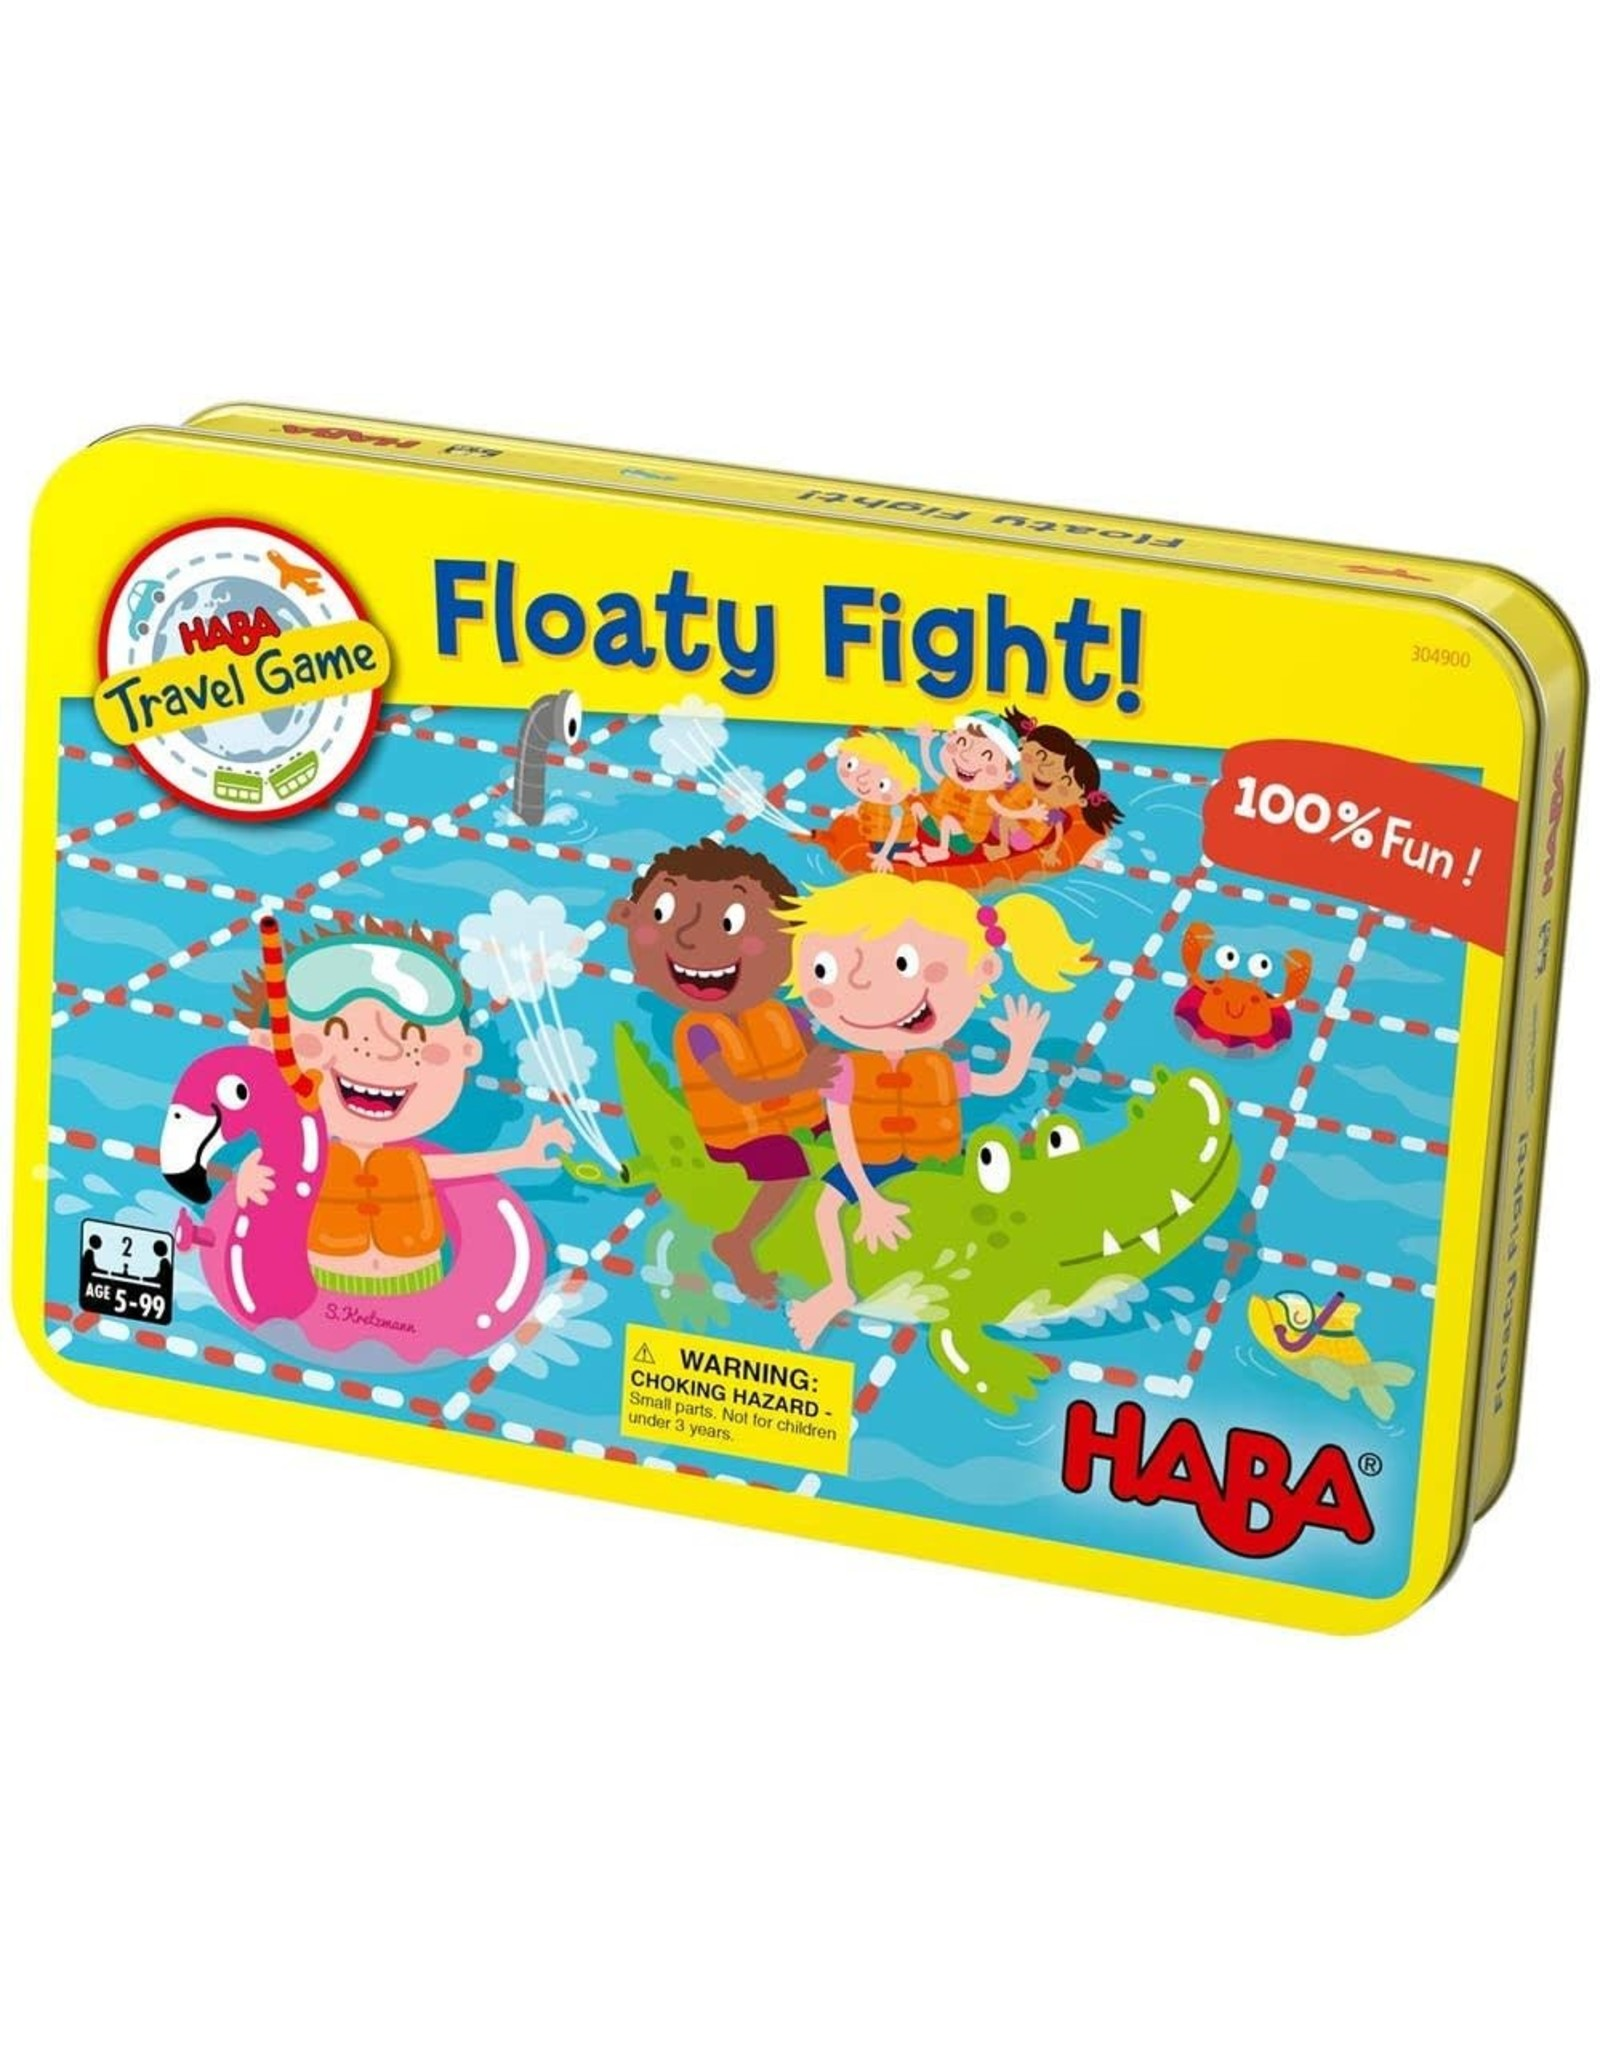 HABA GAMES FLOATY FIGHT